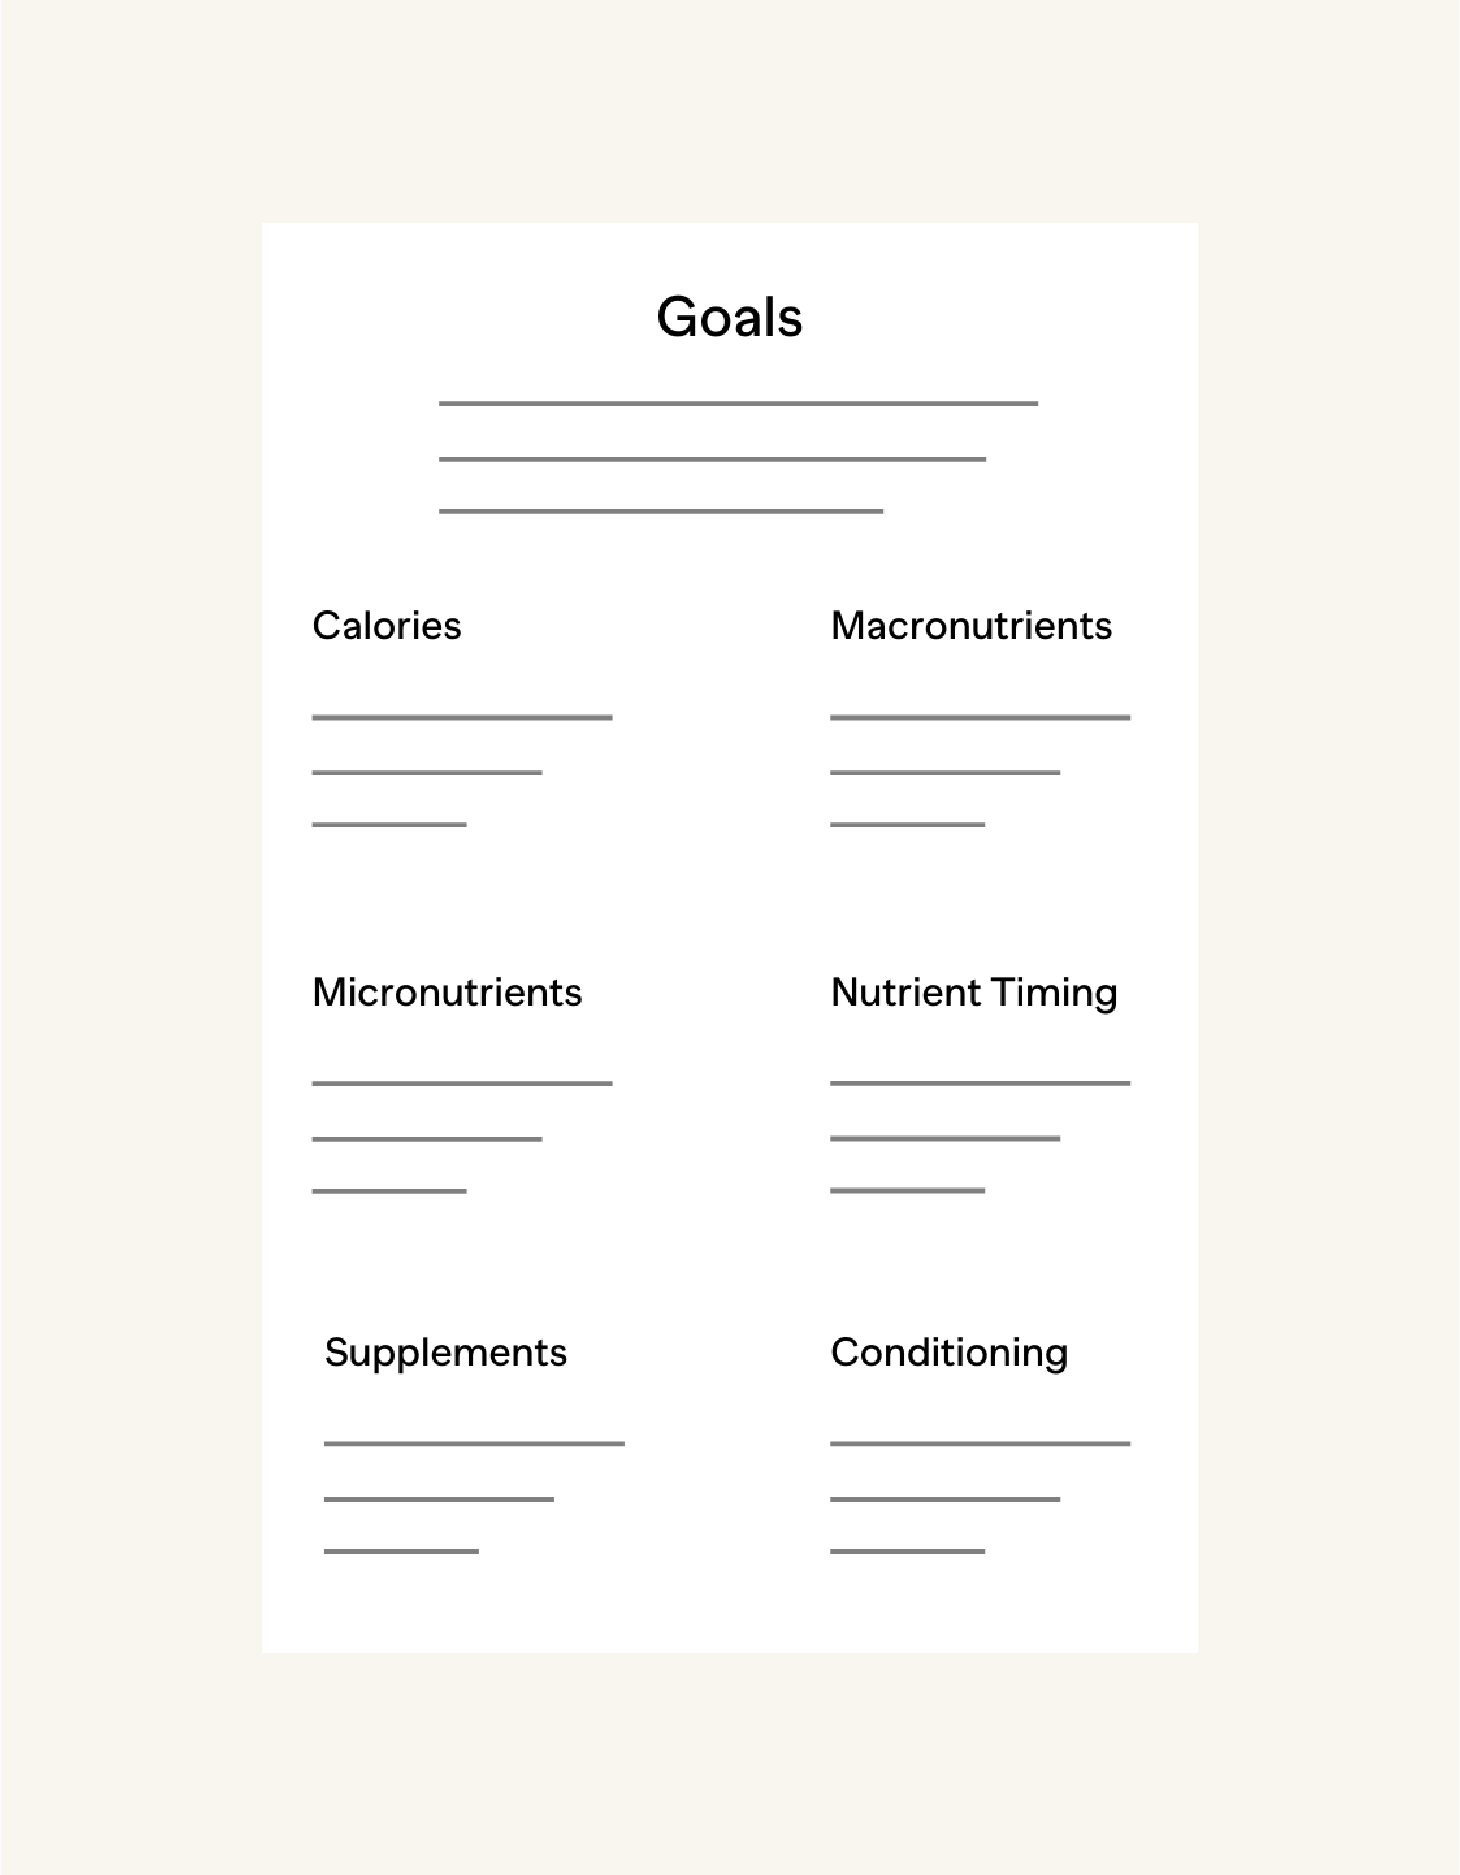 STEP 3Program Development - Your coach will review your athlete onboarding form and prepare a nutrition road map and starting program for you. The roadmap will be your north star, and your coach will guide you every step of the way to ensure your goals are met.